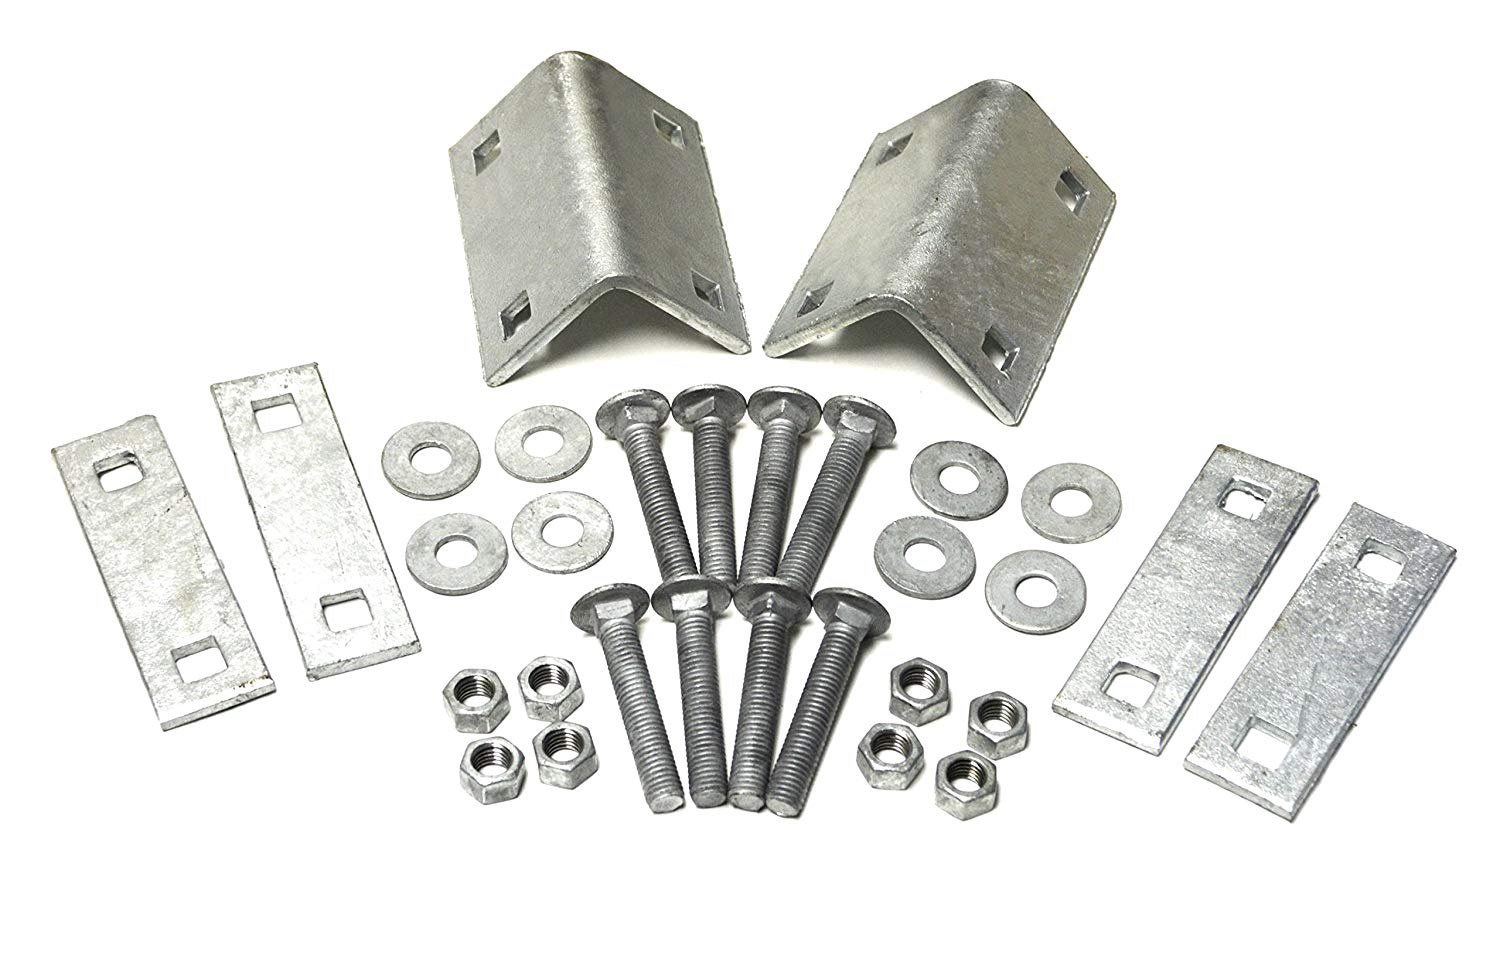 Dock Hardware Galvanized Add A Stringer Joist/Support Beam Boat Dock Frame  Kit